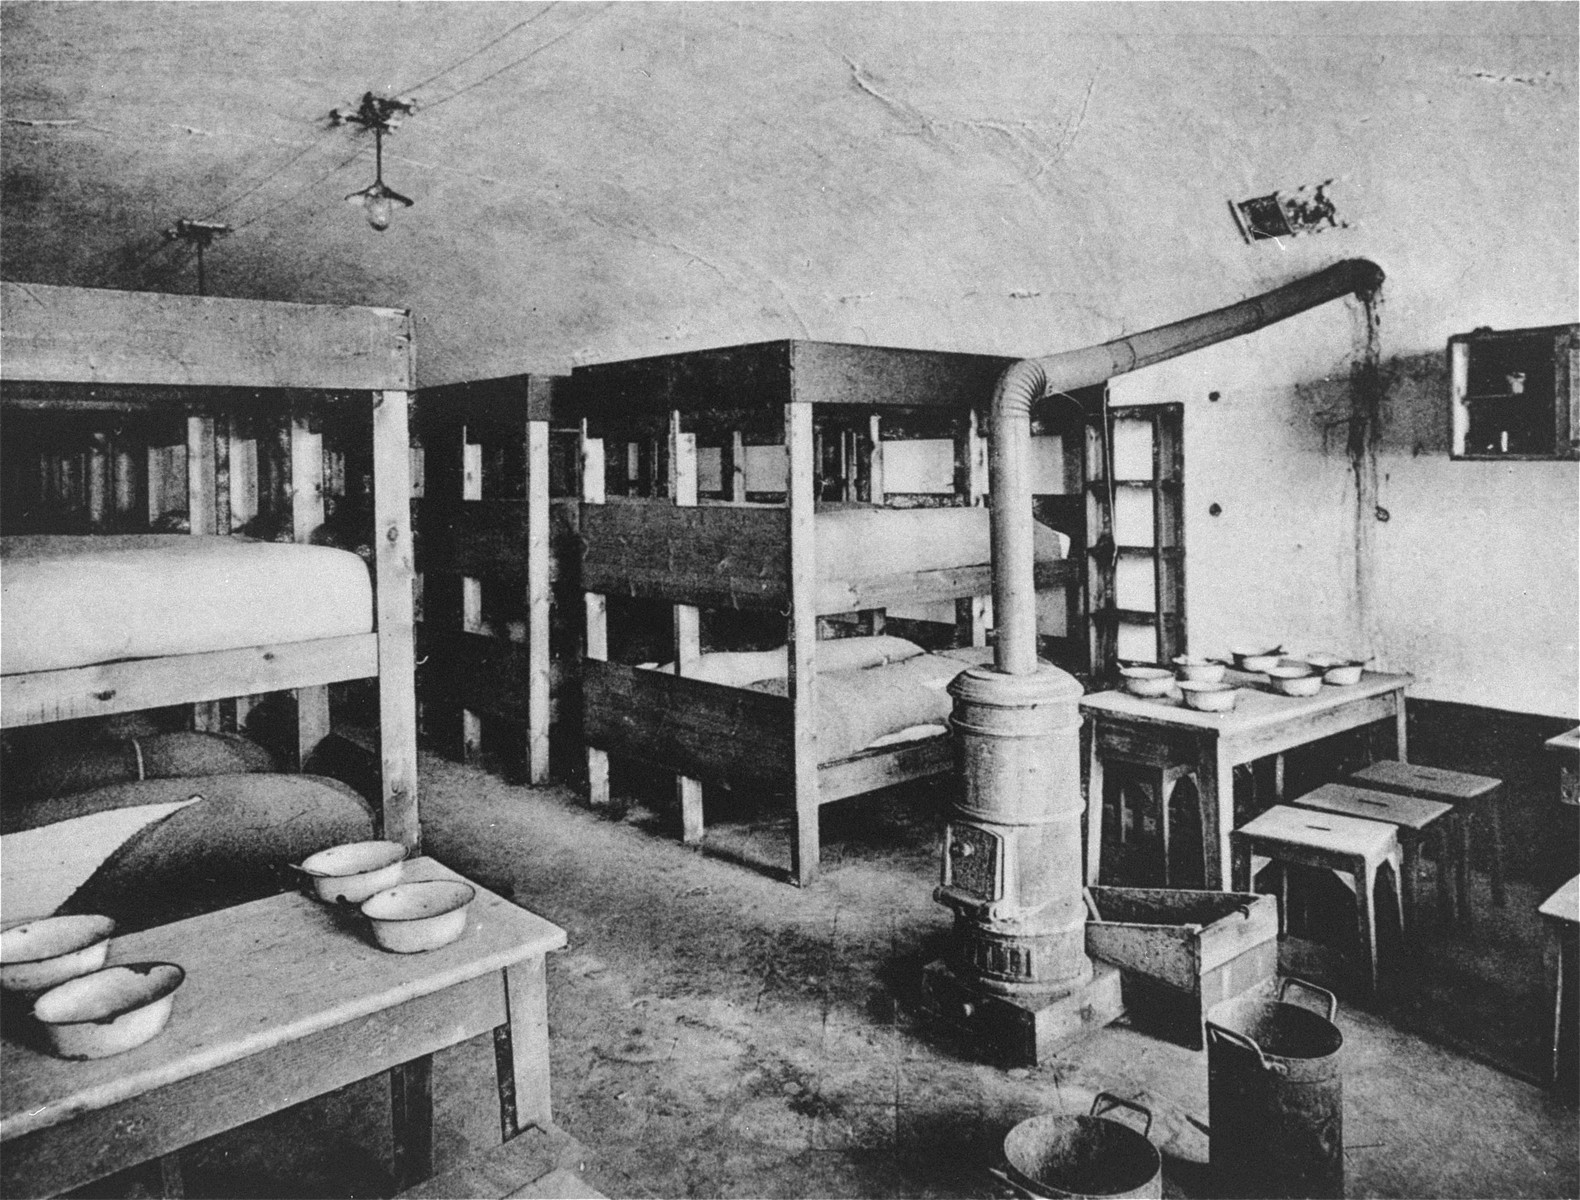 A barracks in the Breendonck fortress transit camp.